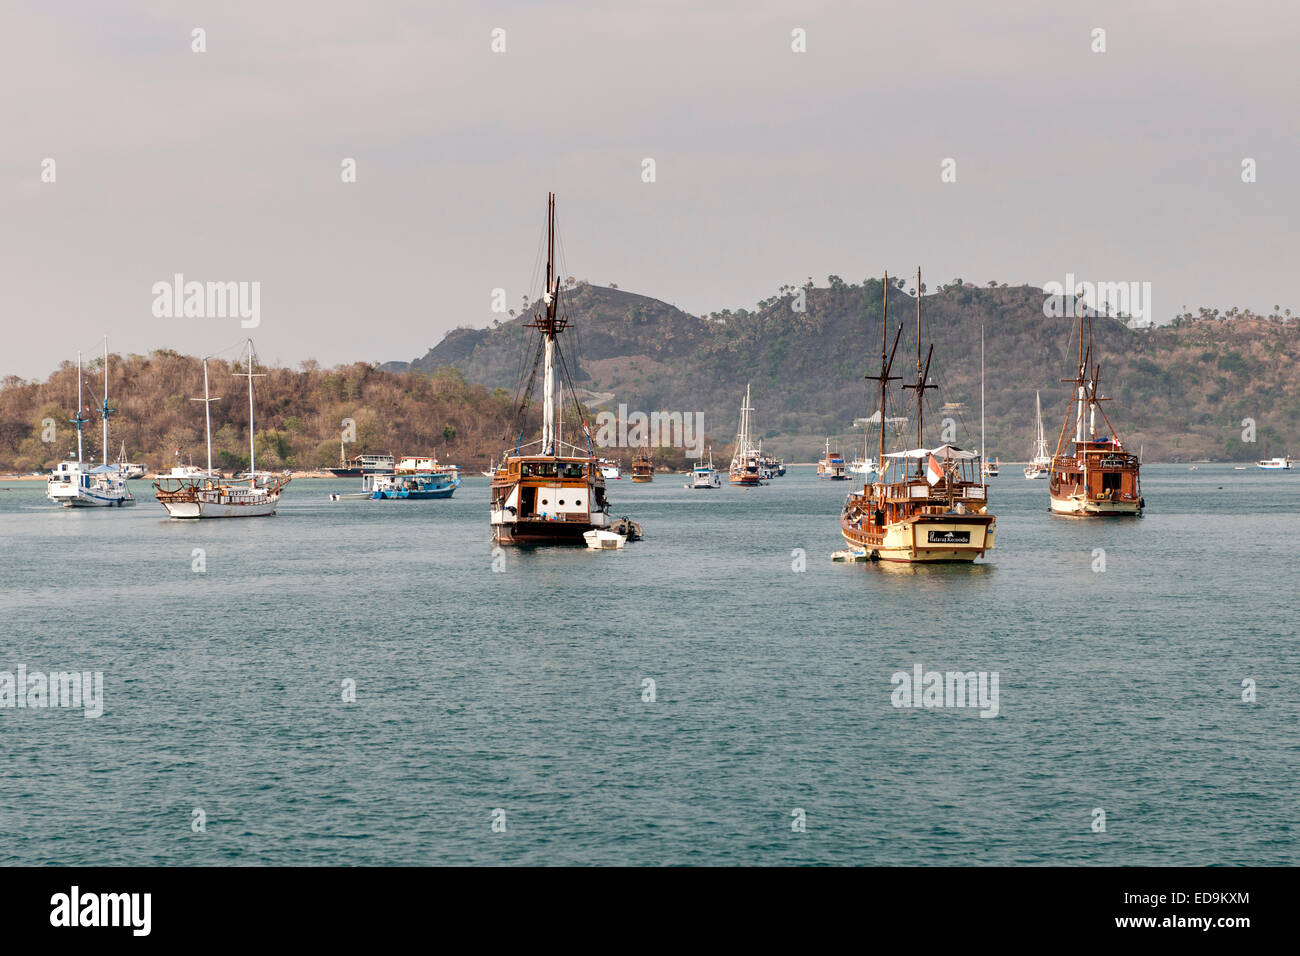 Boats anchored in the bay of Labuan Bajo on the island of Flores, East Nusa Tenggara, Indonesia. - Stock Image